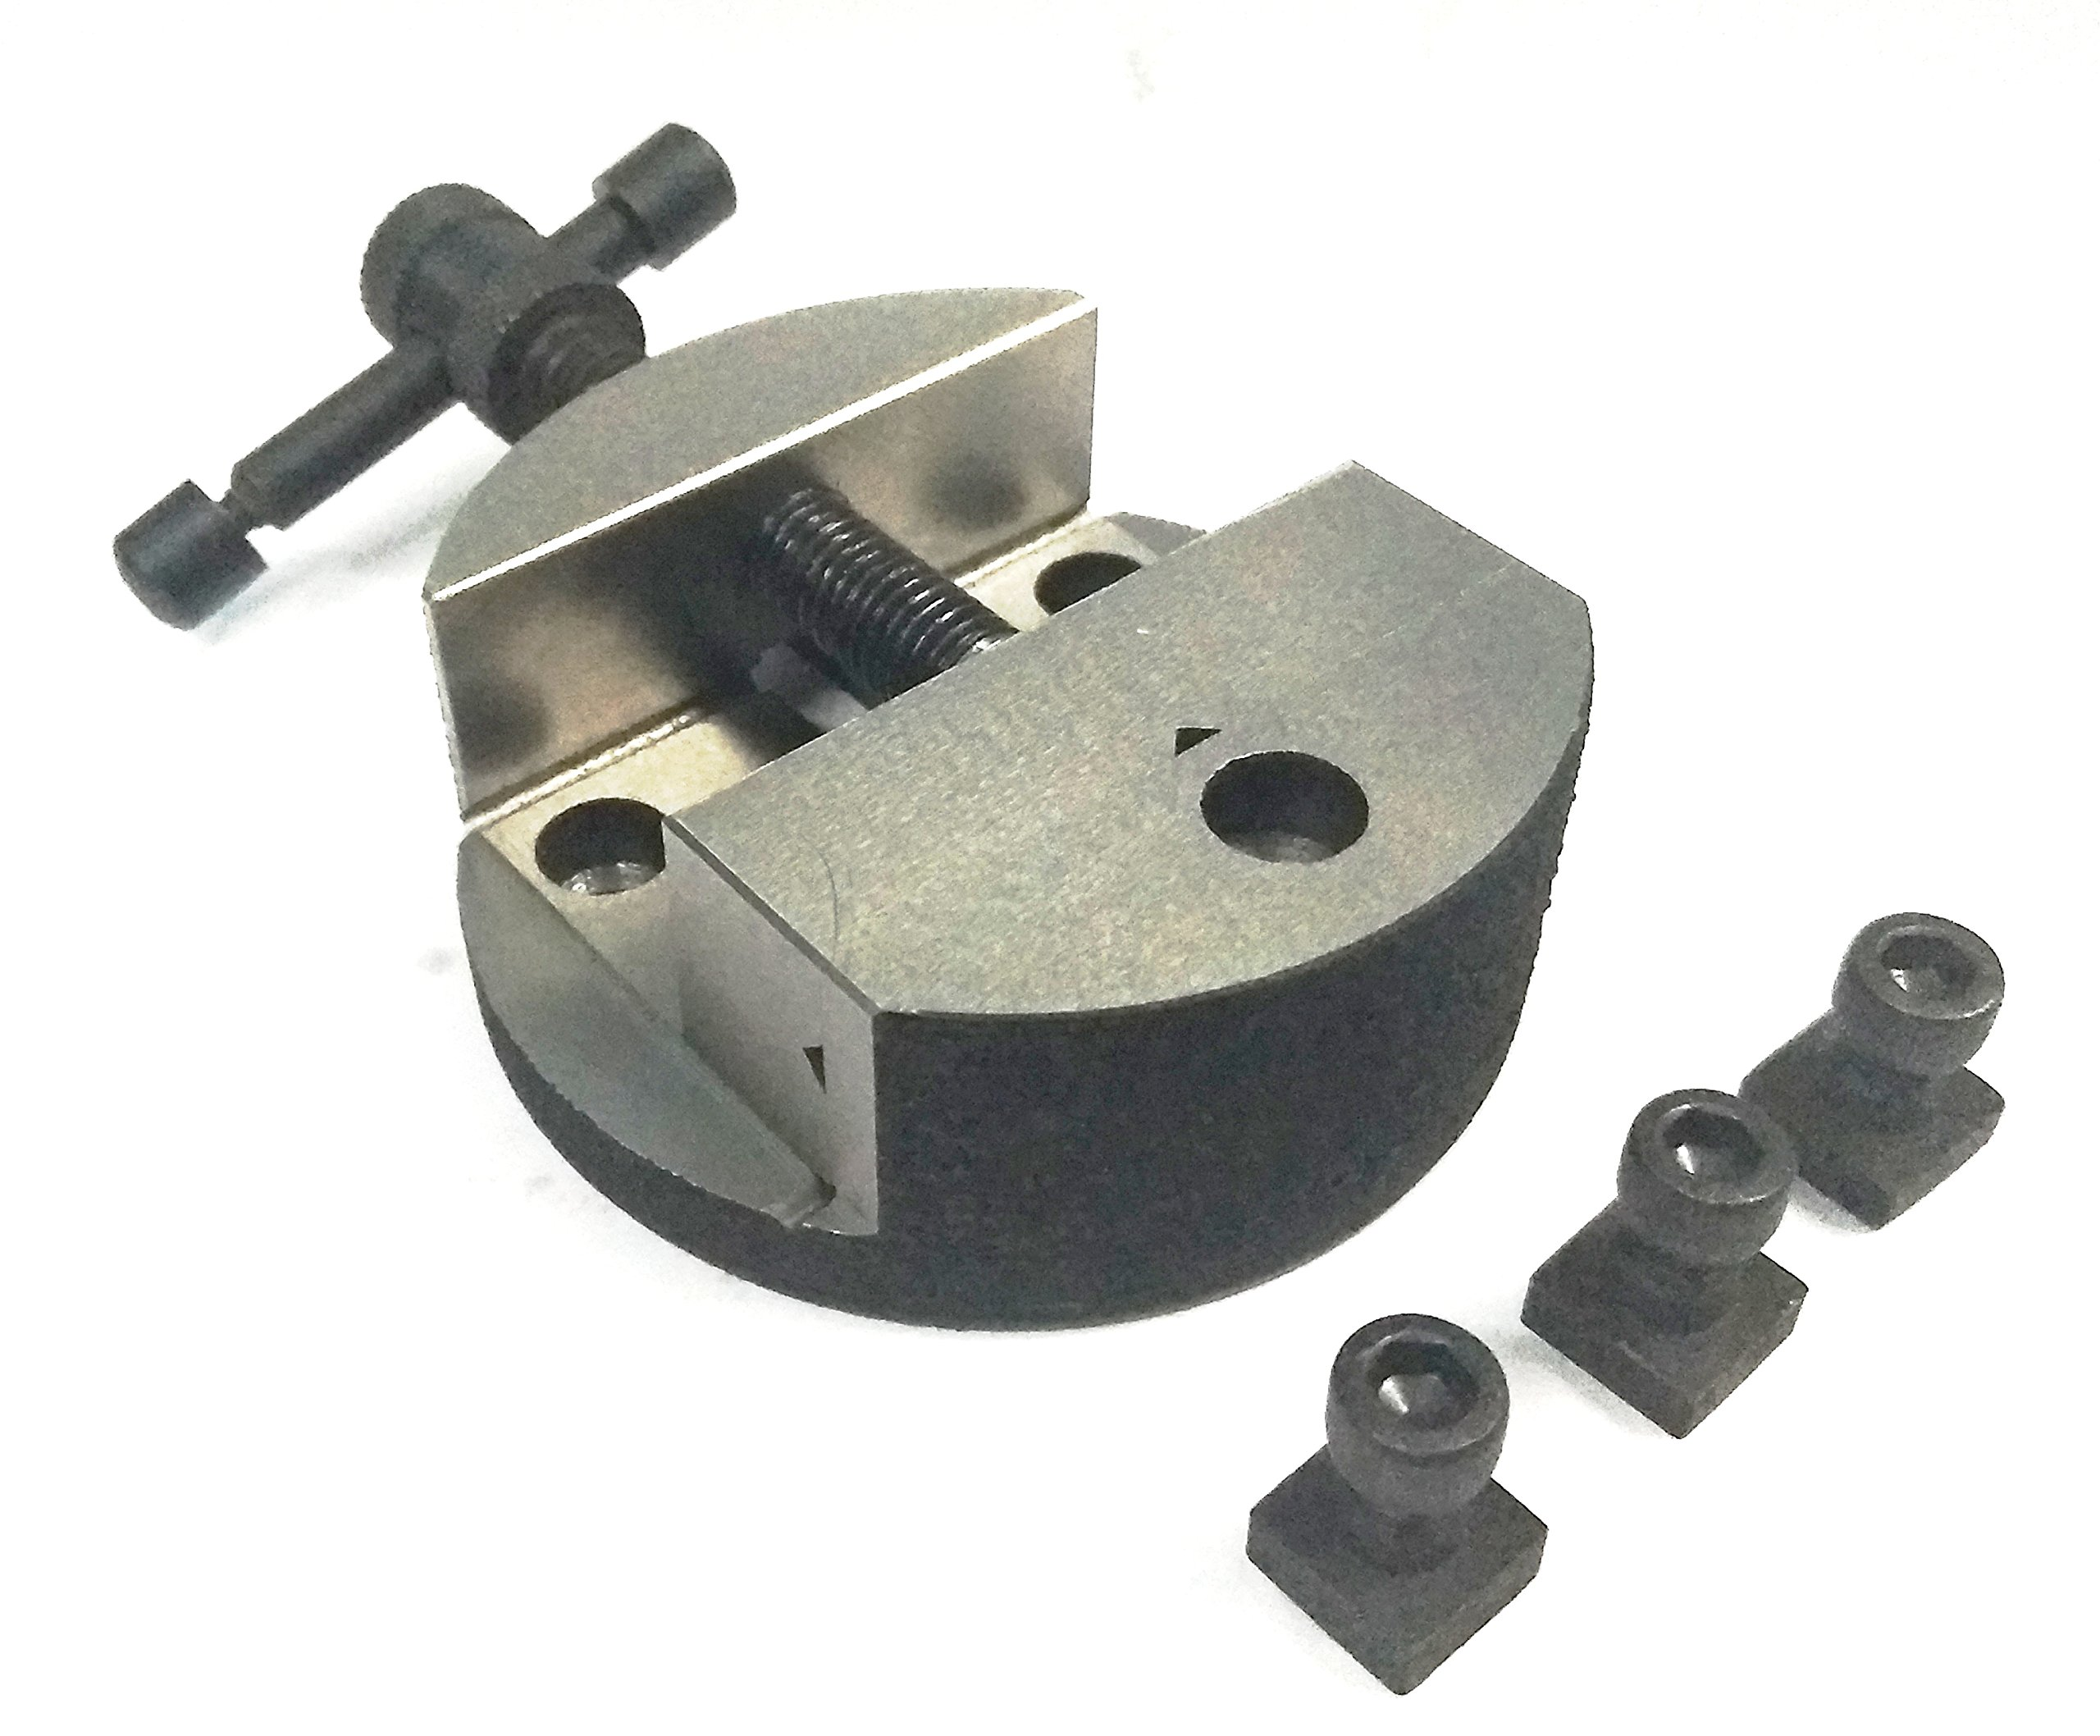 ASSORTS's Quality 100 mm Round Vice For 4'' (100 mm) Rotary Milling Indexing Table with 3 x M6 T nuts Bolts-Engineering Tools